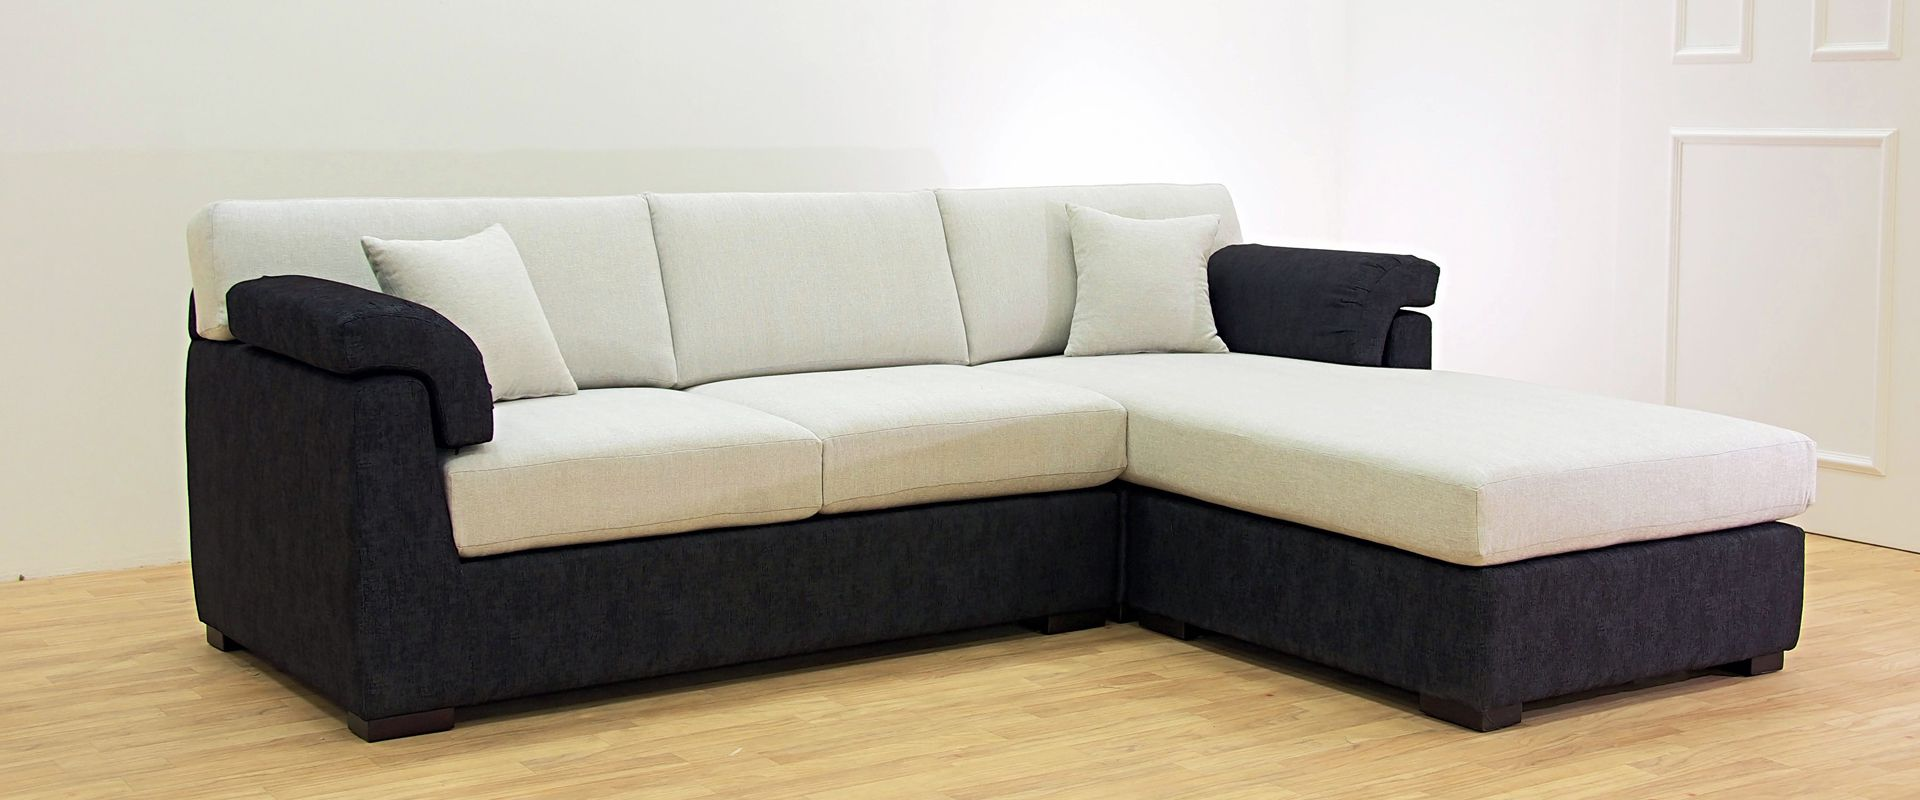 Cheap Sofa Bed In Dubai